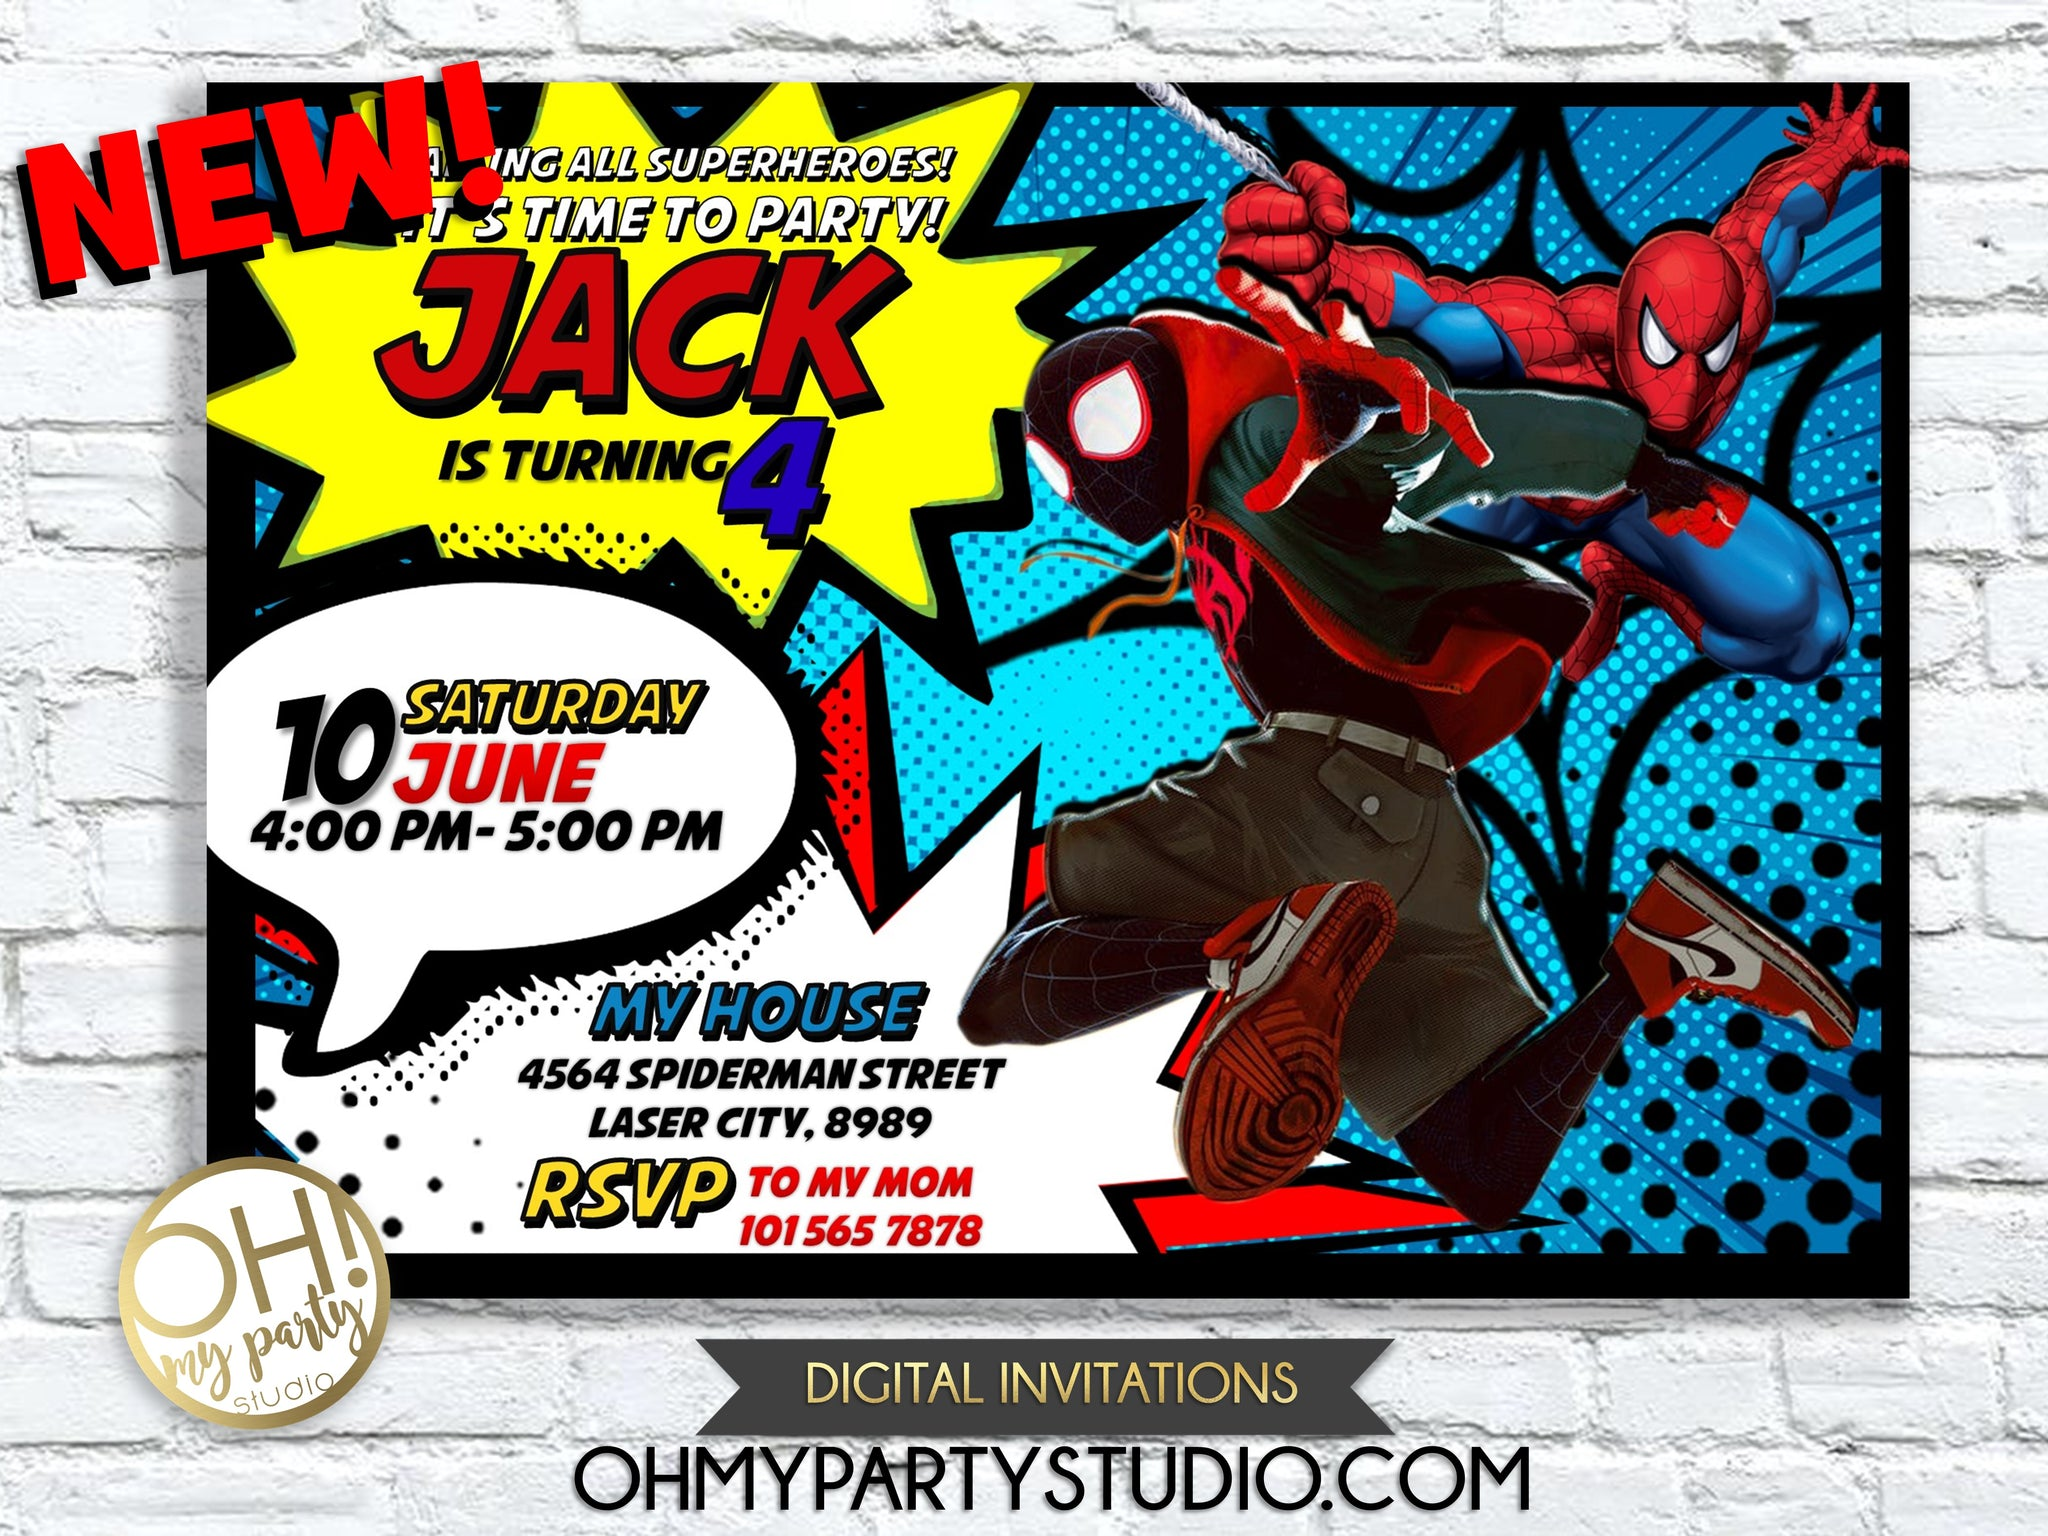 image regarding Printable Spiderman Invitations named INTO THE SPIDER VERSE BIRTHDAY INVITATION